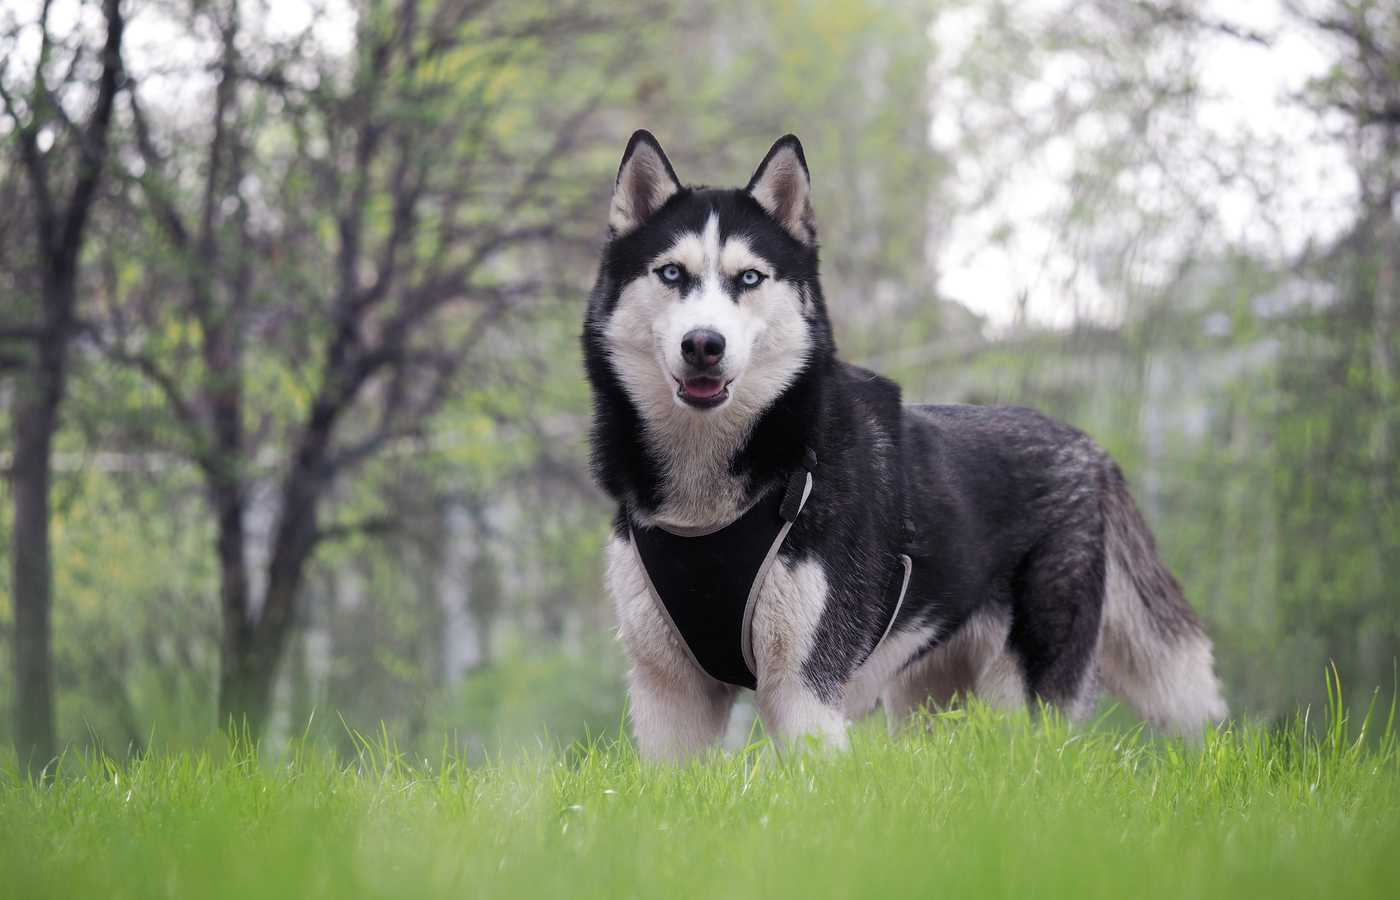 husky standing on grass wearing harness